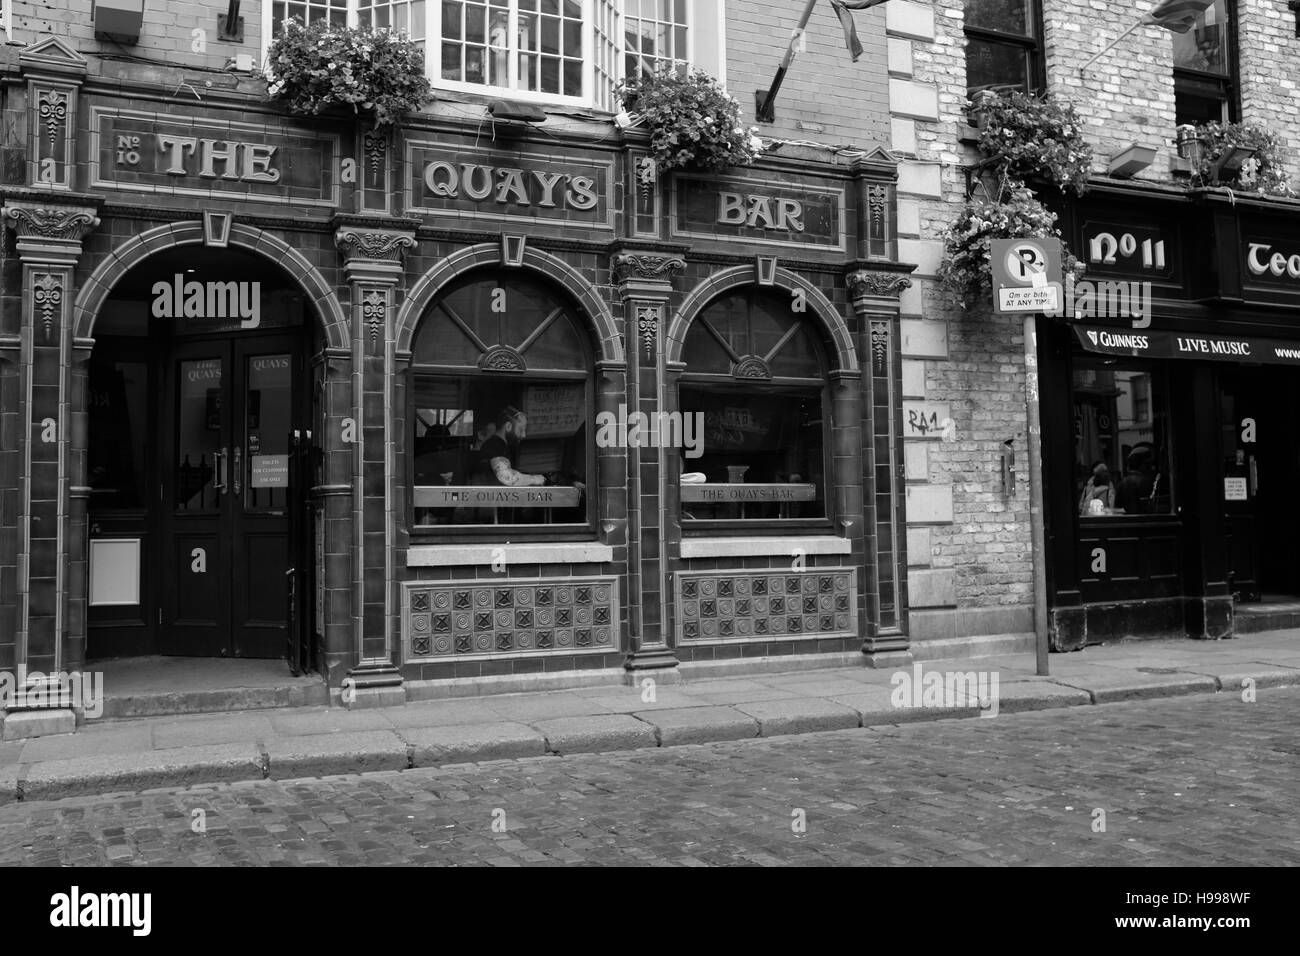 The Quay is one of the many bars in the touristy Temple Bar area of Dublin. - Stock Image